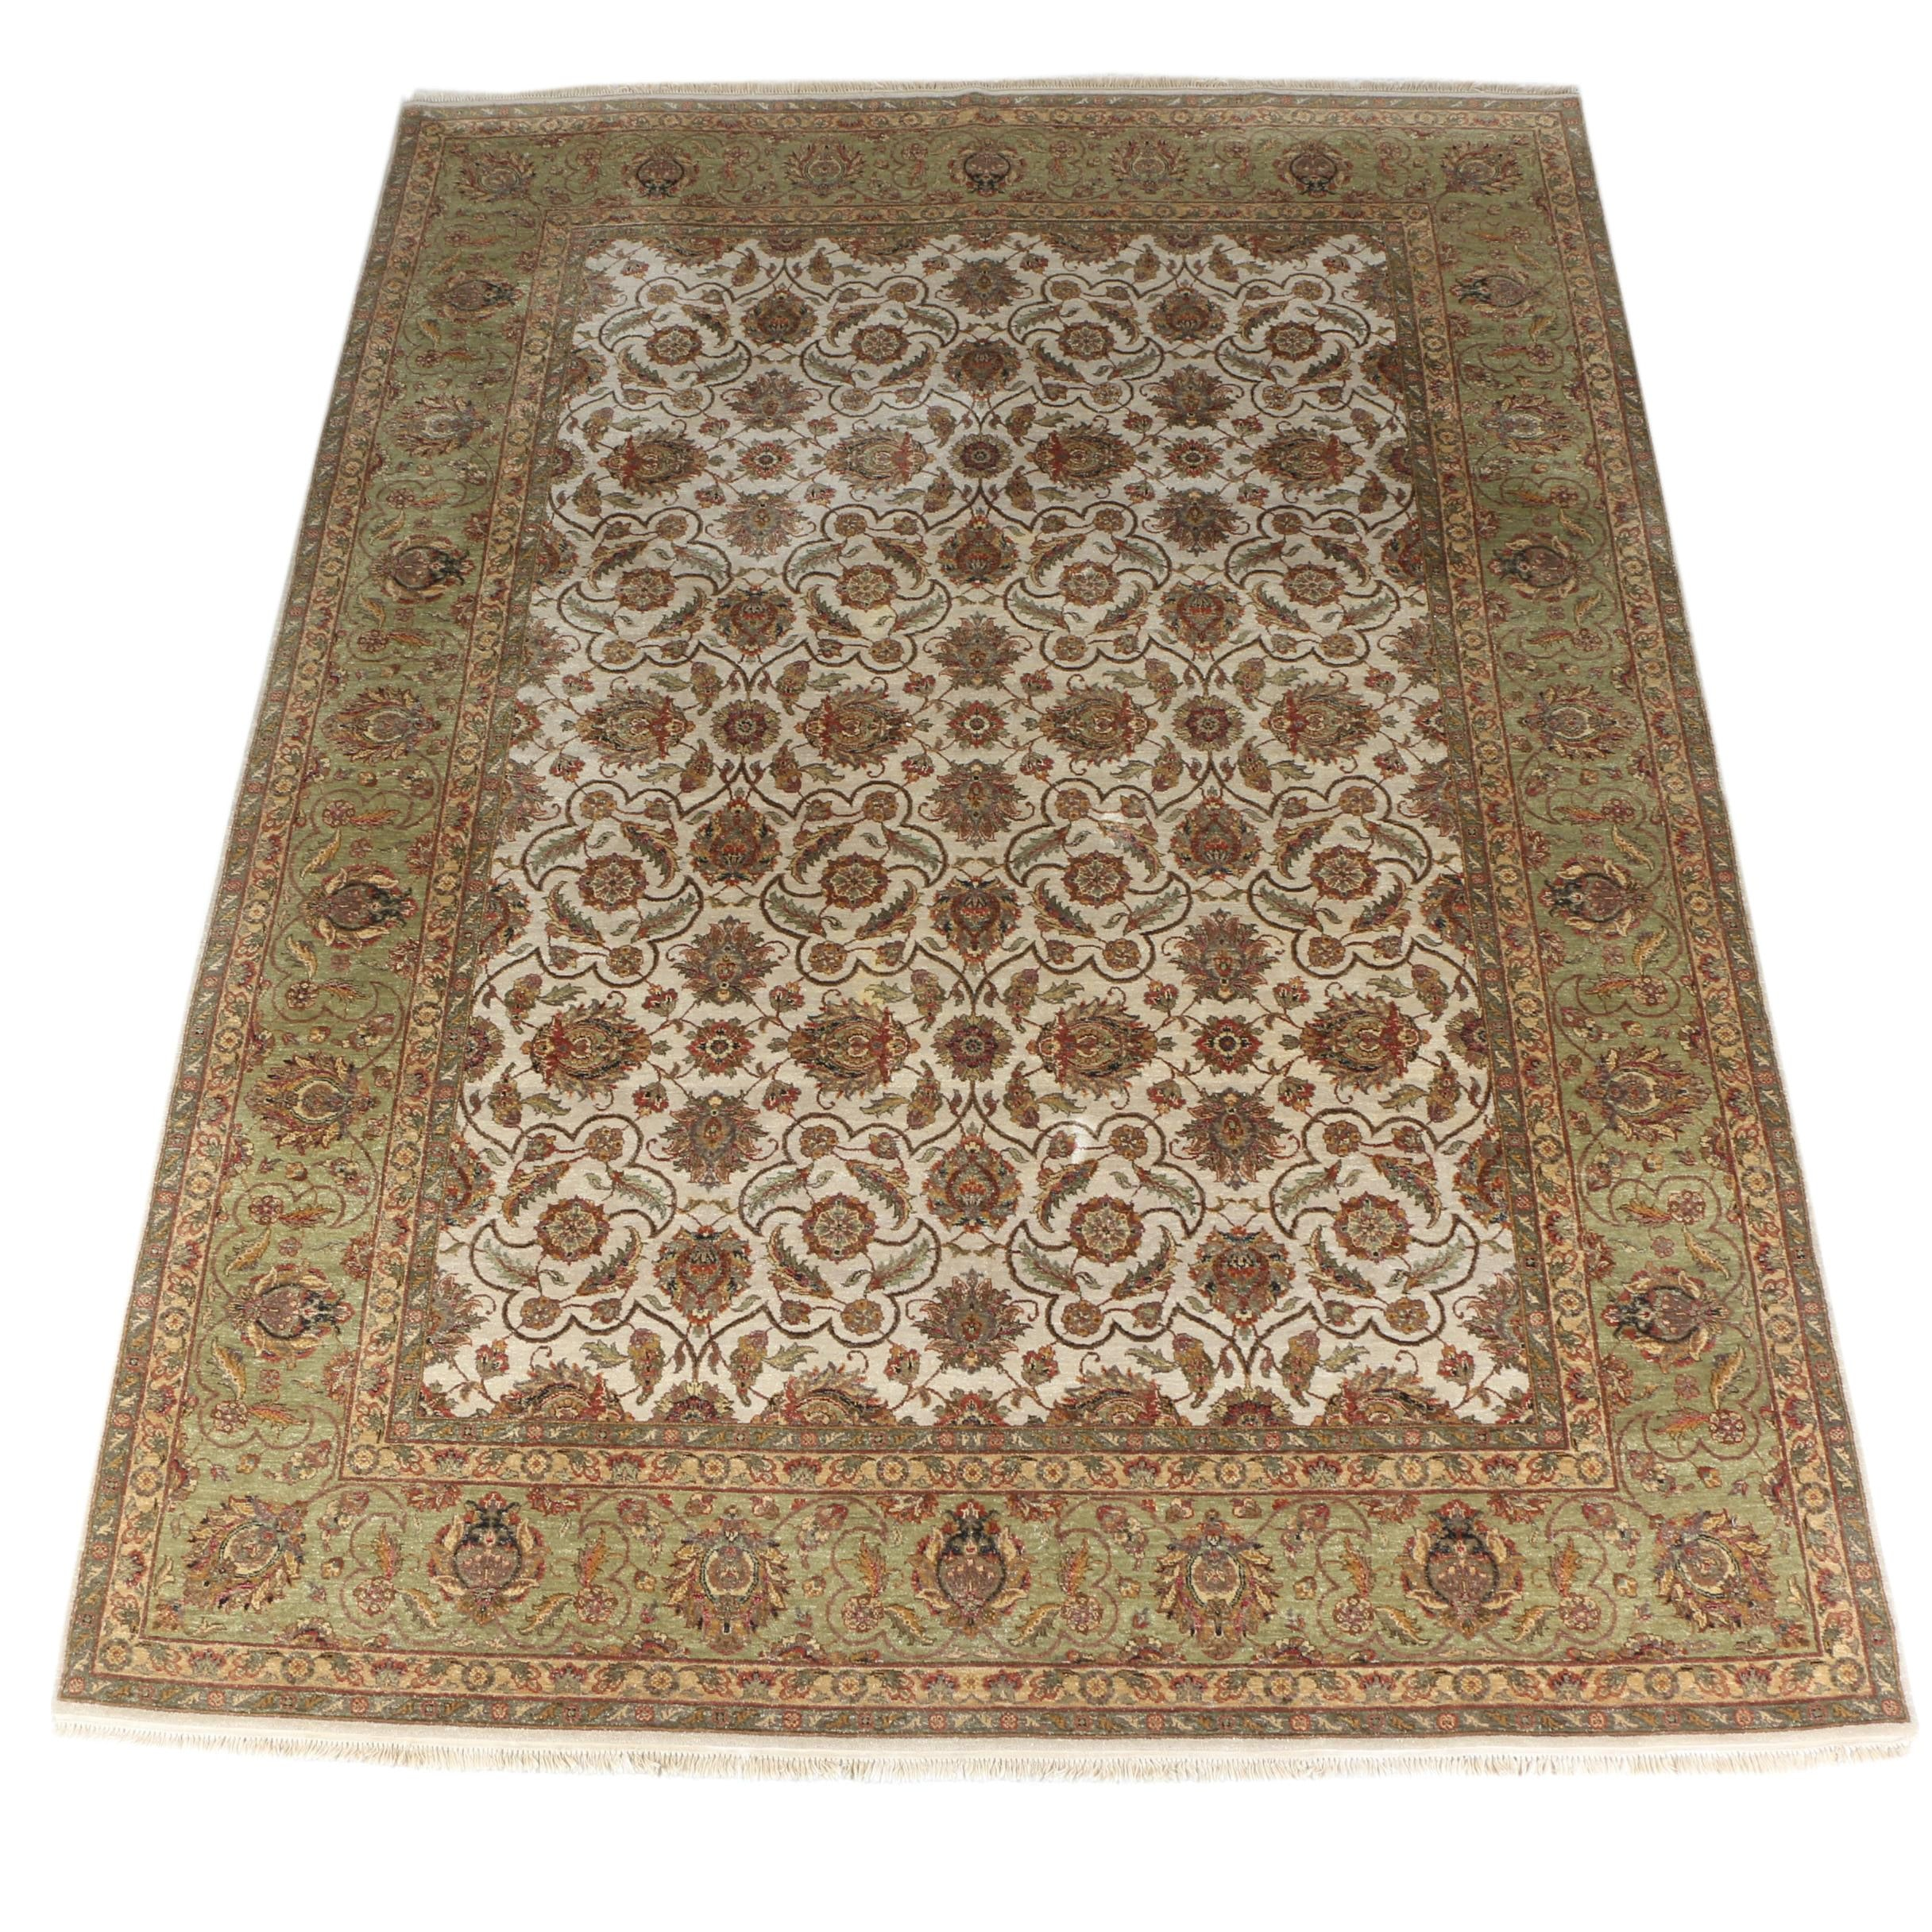 Hand-Knotted Indo-Persian Peshawar Wool Room Size Rug